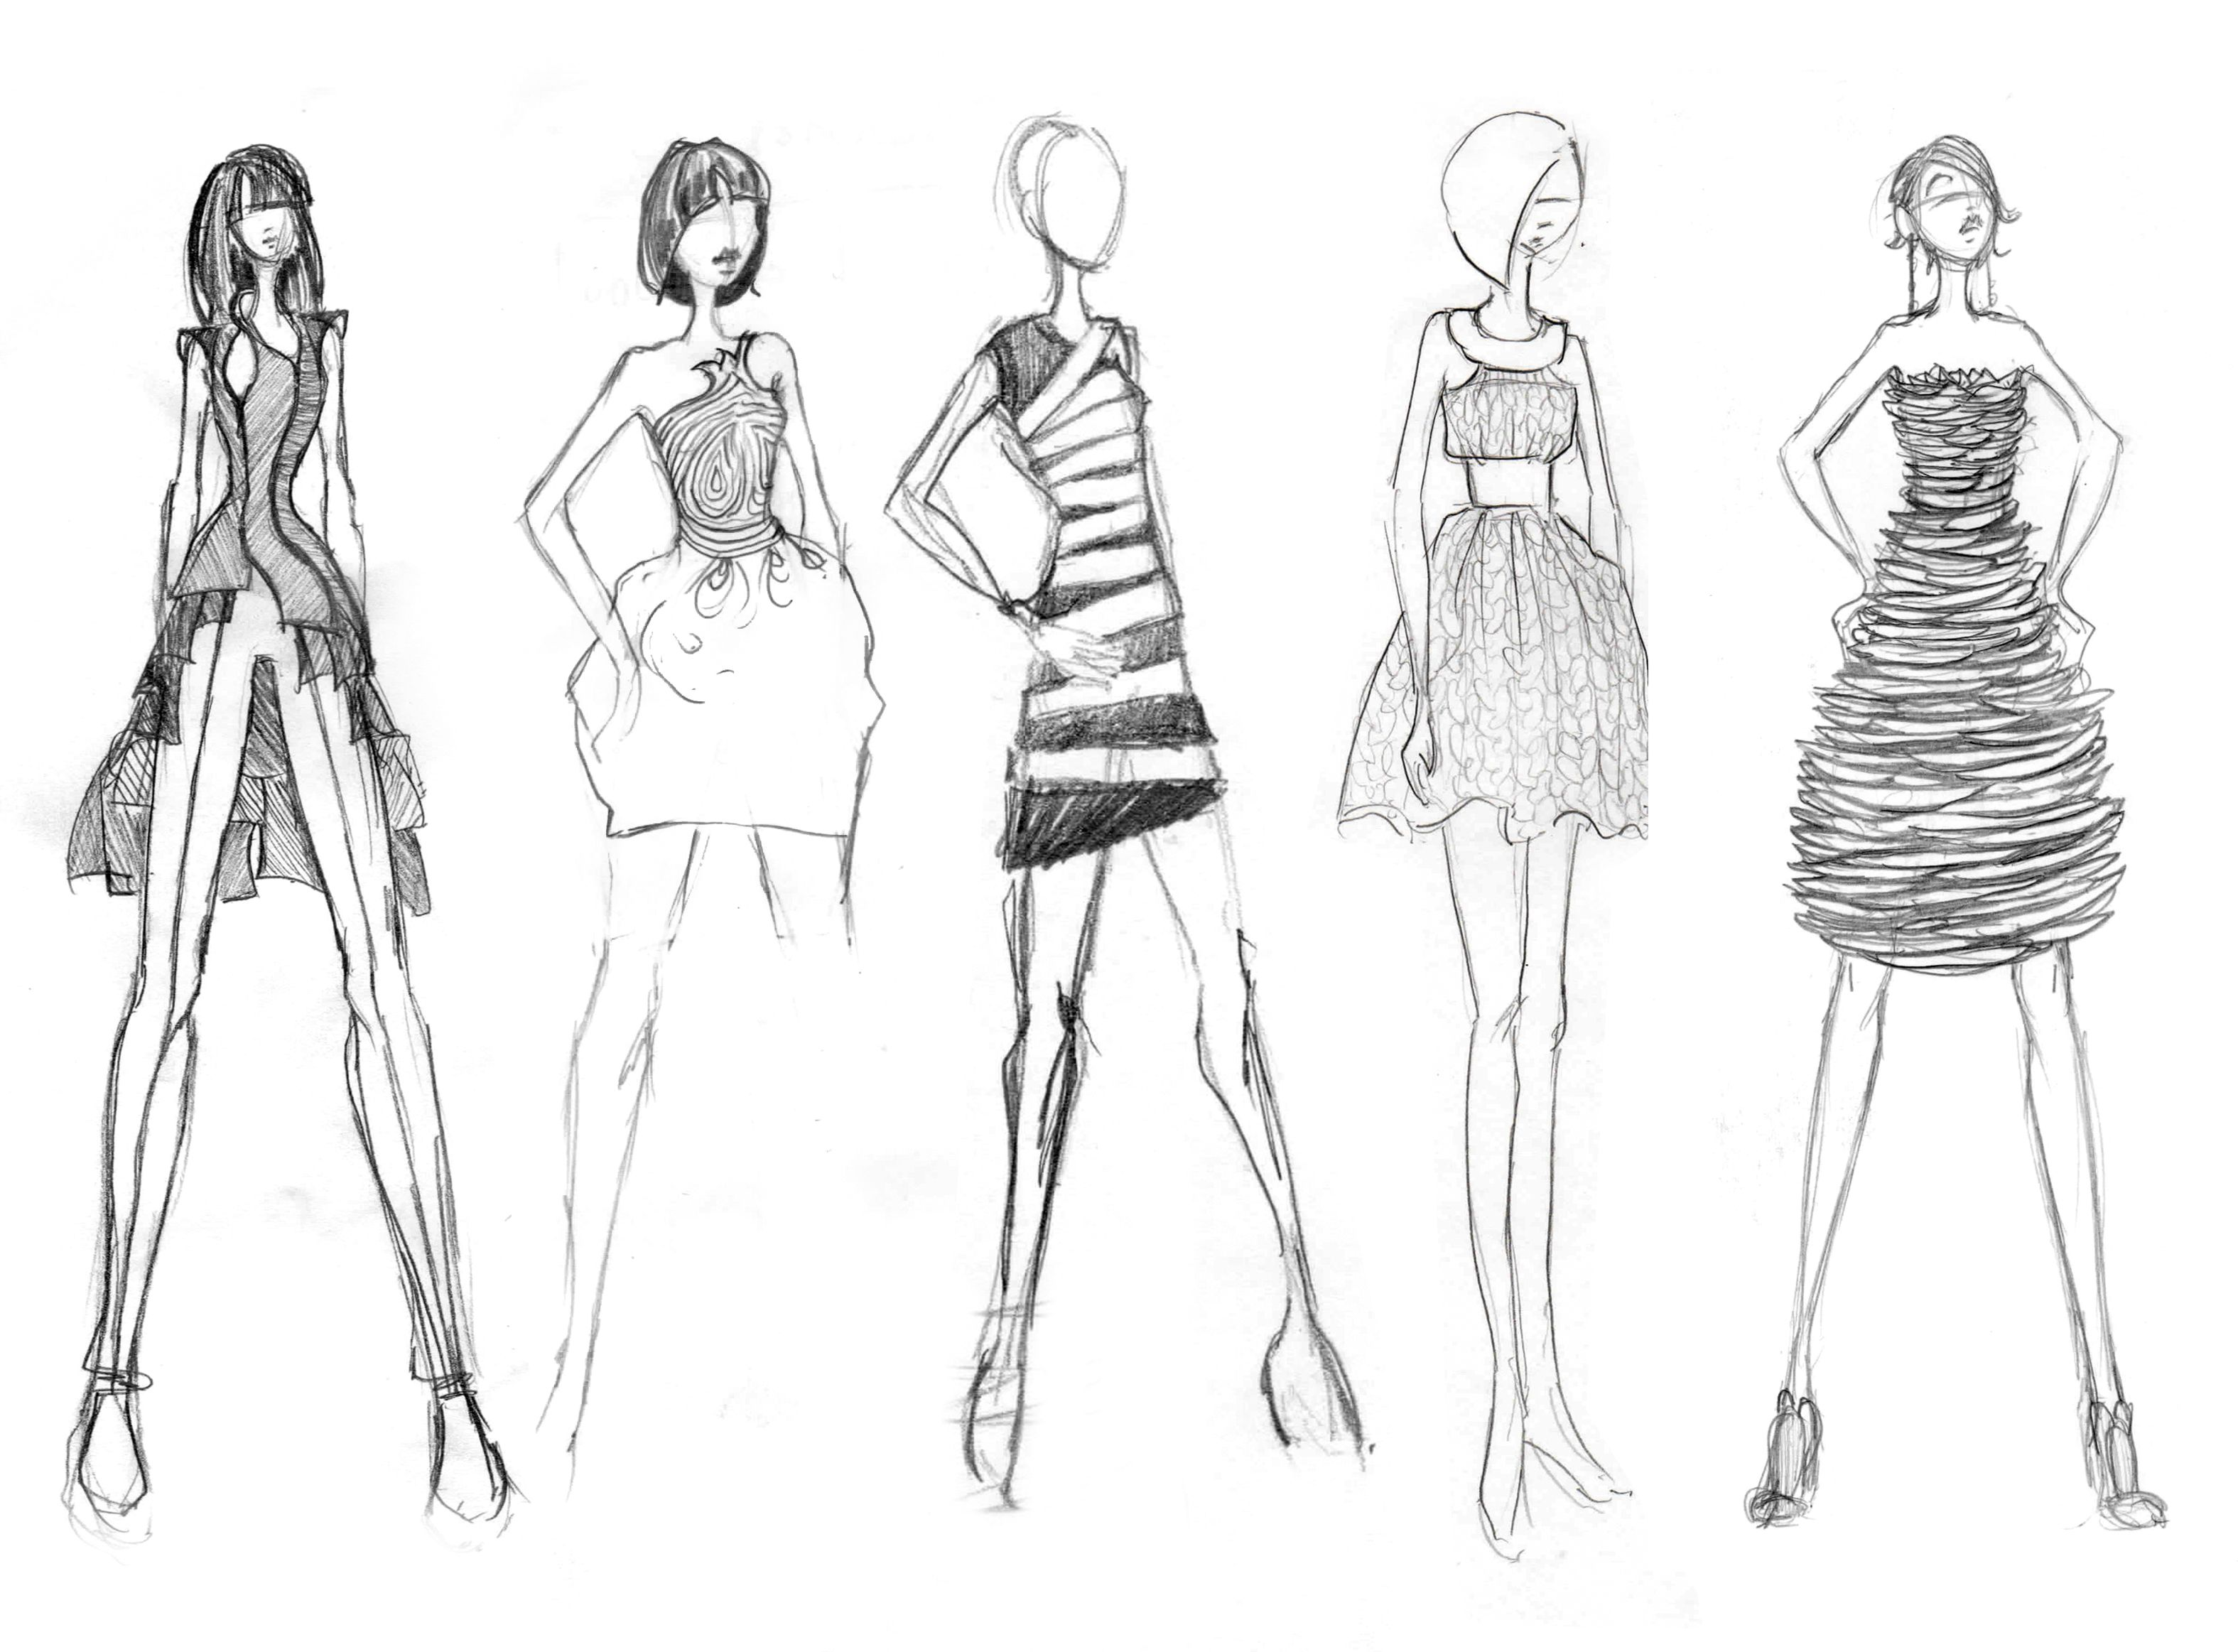 17 best images about fashion sketches on Pinterest | Fashion ...